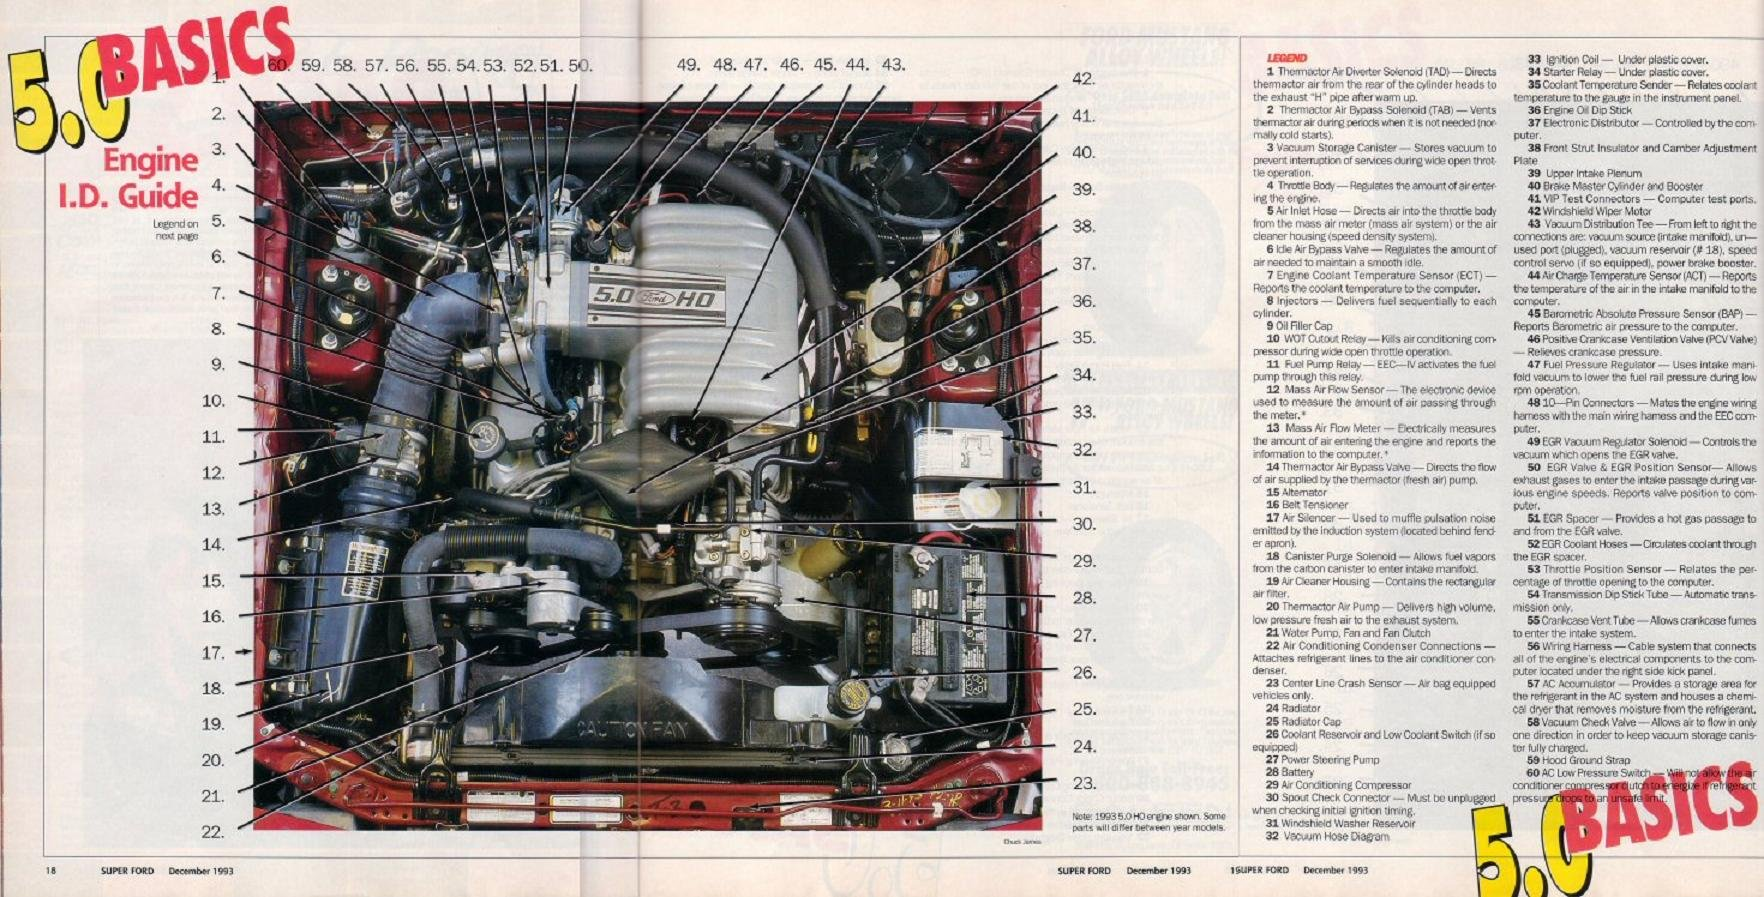 1983 Ford 5 0 Engine Diagram Worksheet And Wiring For 95 Mustang Gt 1994 Compartment Schematics Diagrams U2022 Rh Parntesis Co F 150 50 23 Liter